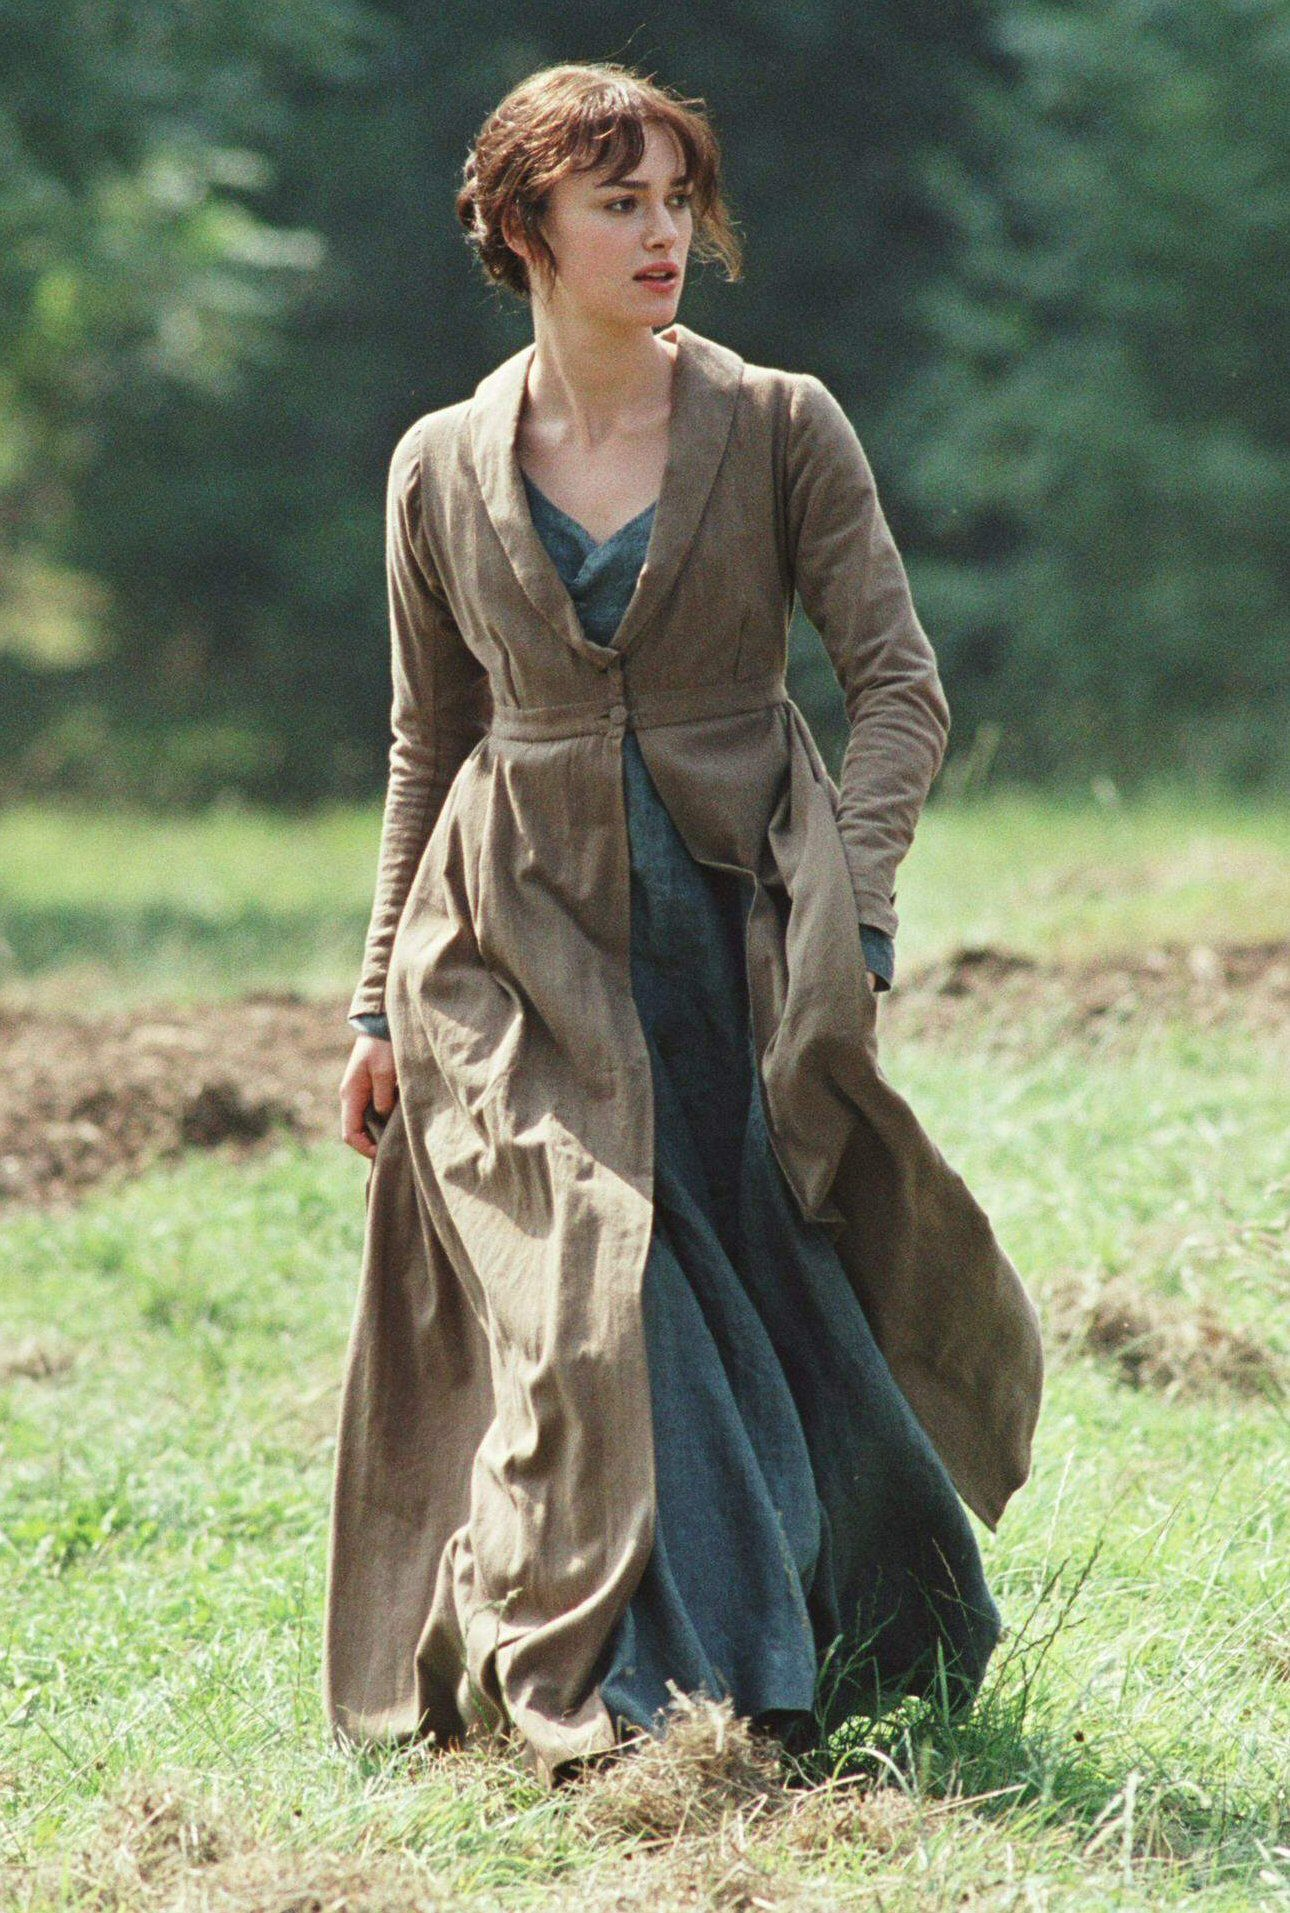 Pride and Prejudice 2005 Movie Gowns. A good collection of photos ...